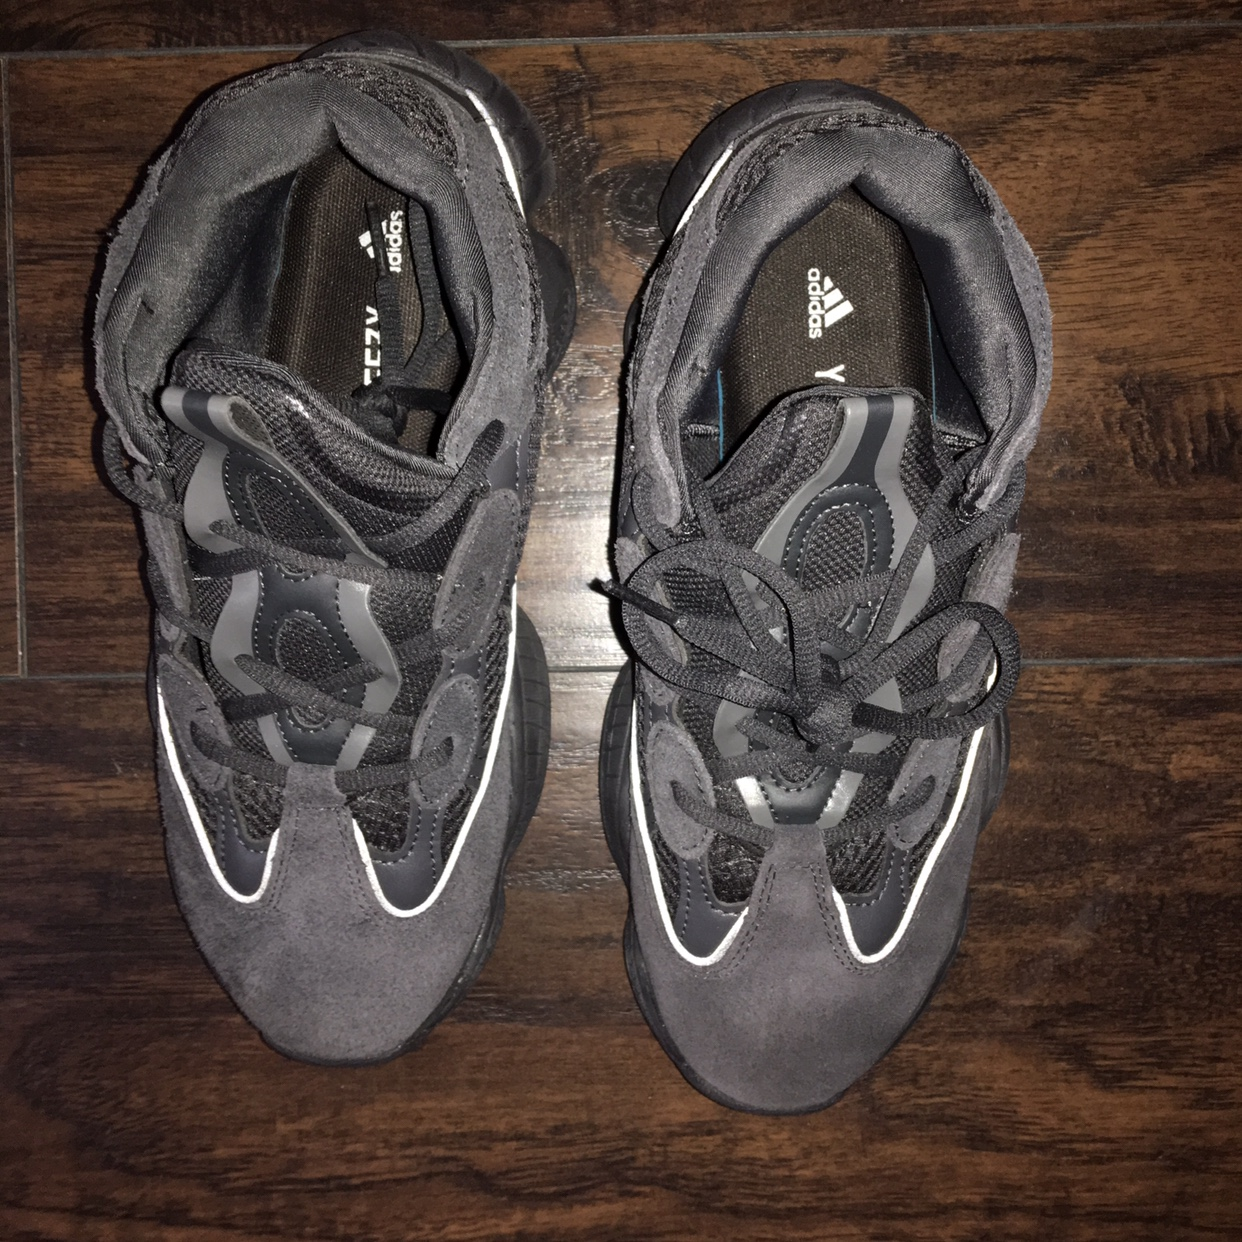 quality design 7e17b aa58f on hold Adidas Yeezy 500 carbon grey, not authentic... - Depop